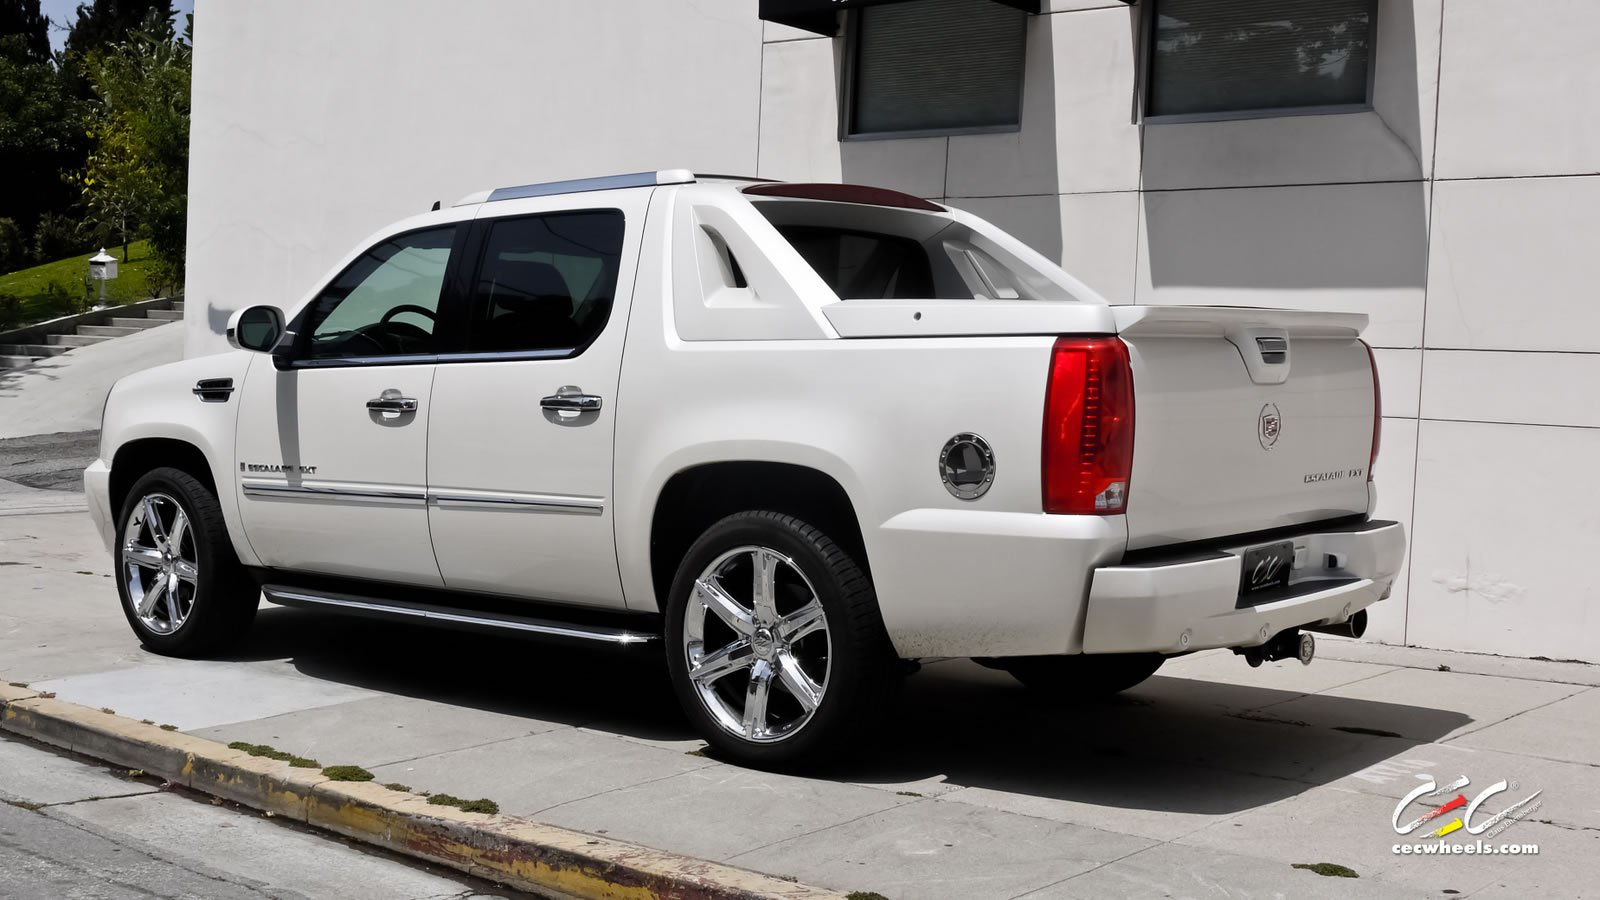 2015 cars cec tuning wheels cadillac escalade ext white suv wallpaper 1600x900 625449. Black Bedroom Furniture Sets. Home Design Ideas